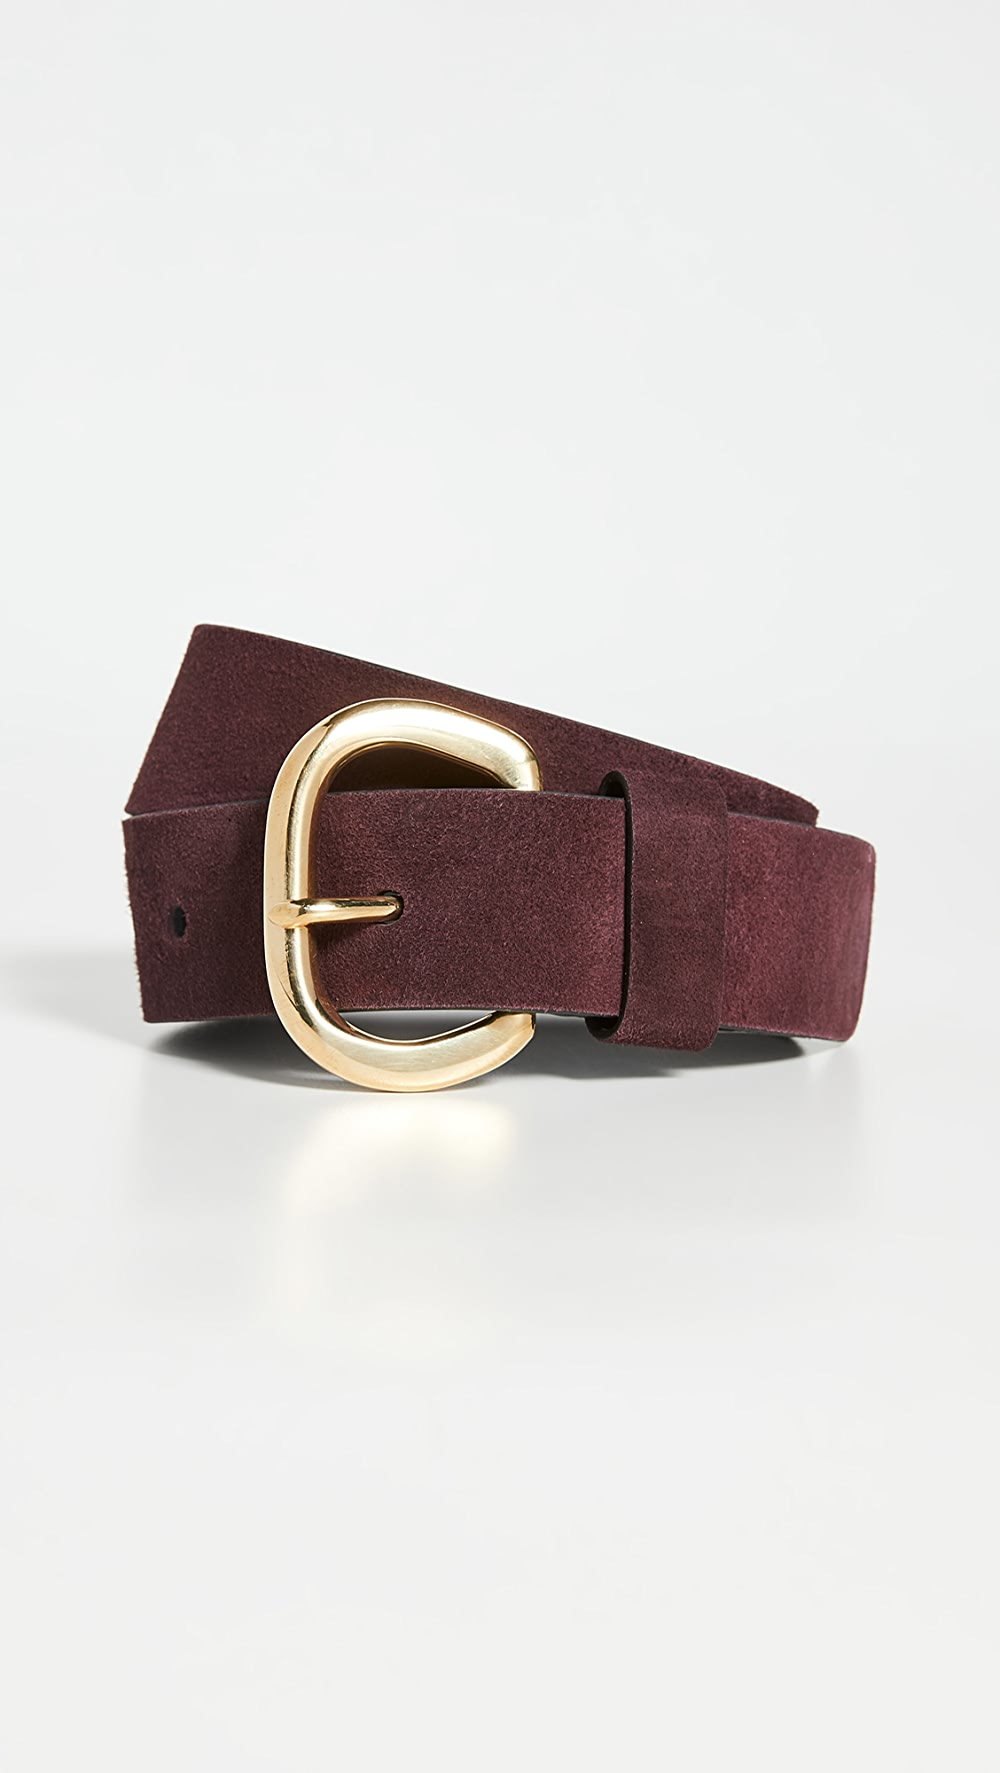 Amicable Rachel Comey - Estate Belt A Great Variety Of Goods